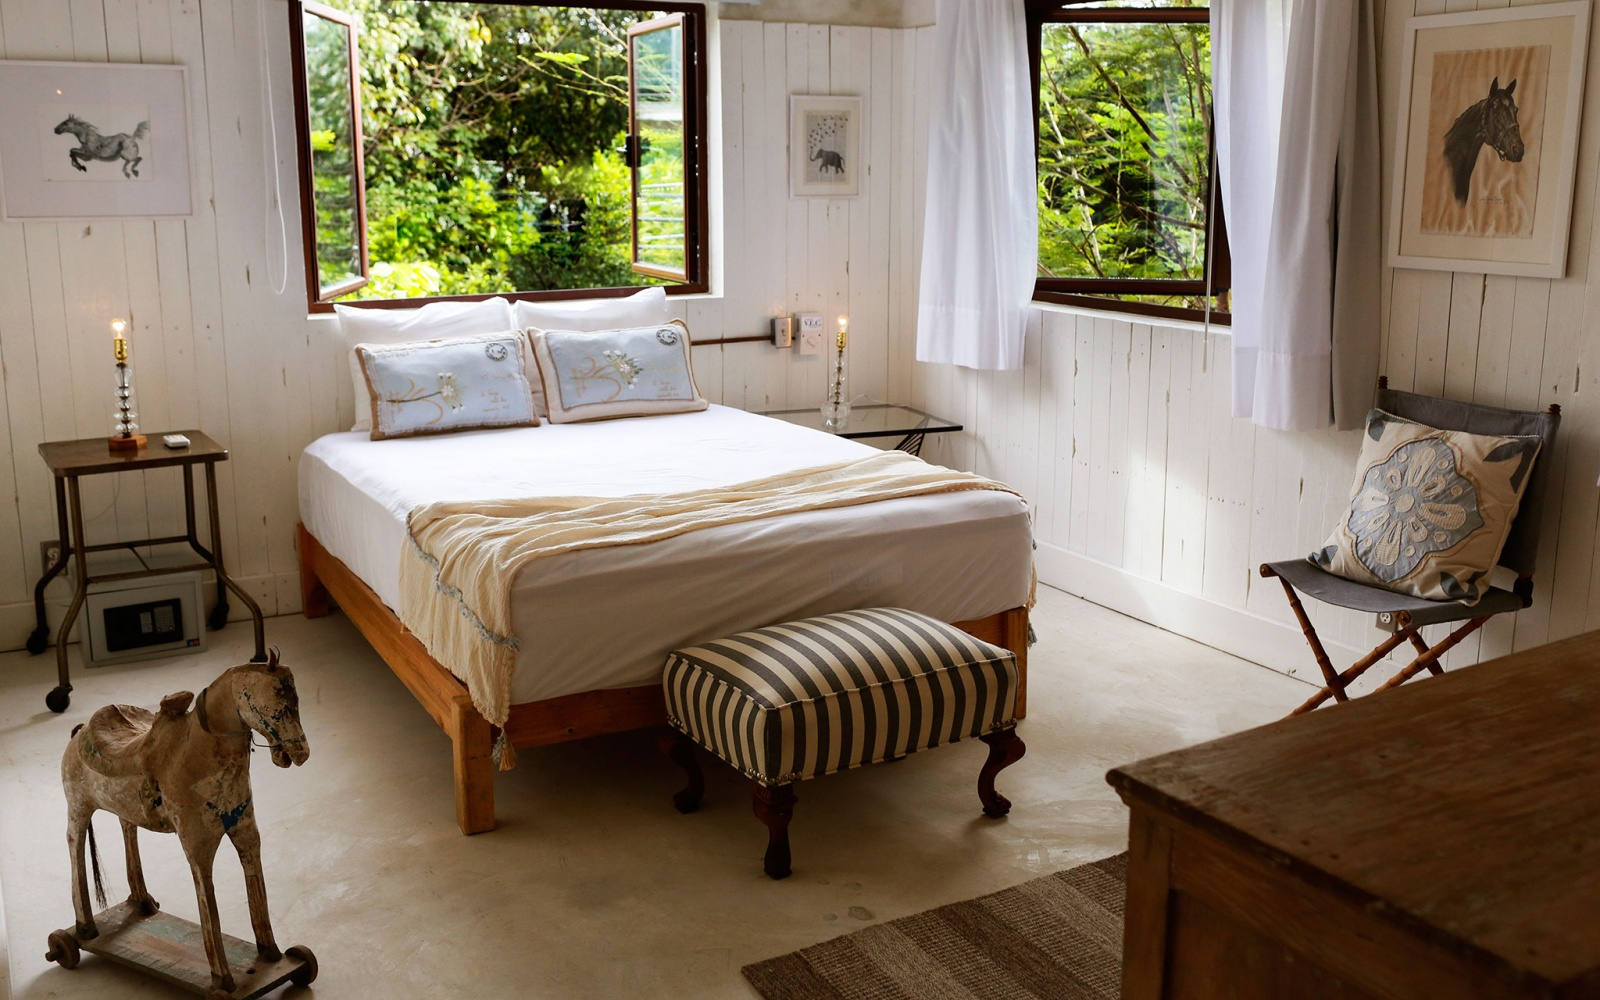 playa del carmen mexico best places to travel in 2015. Black Bedroom Furniture Sets. Home Design Ideas